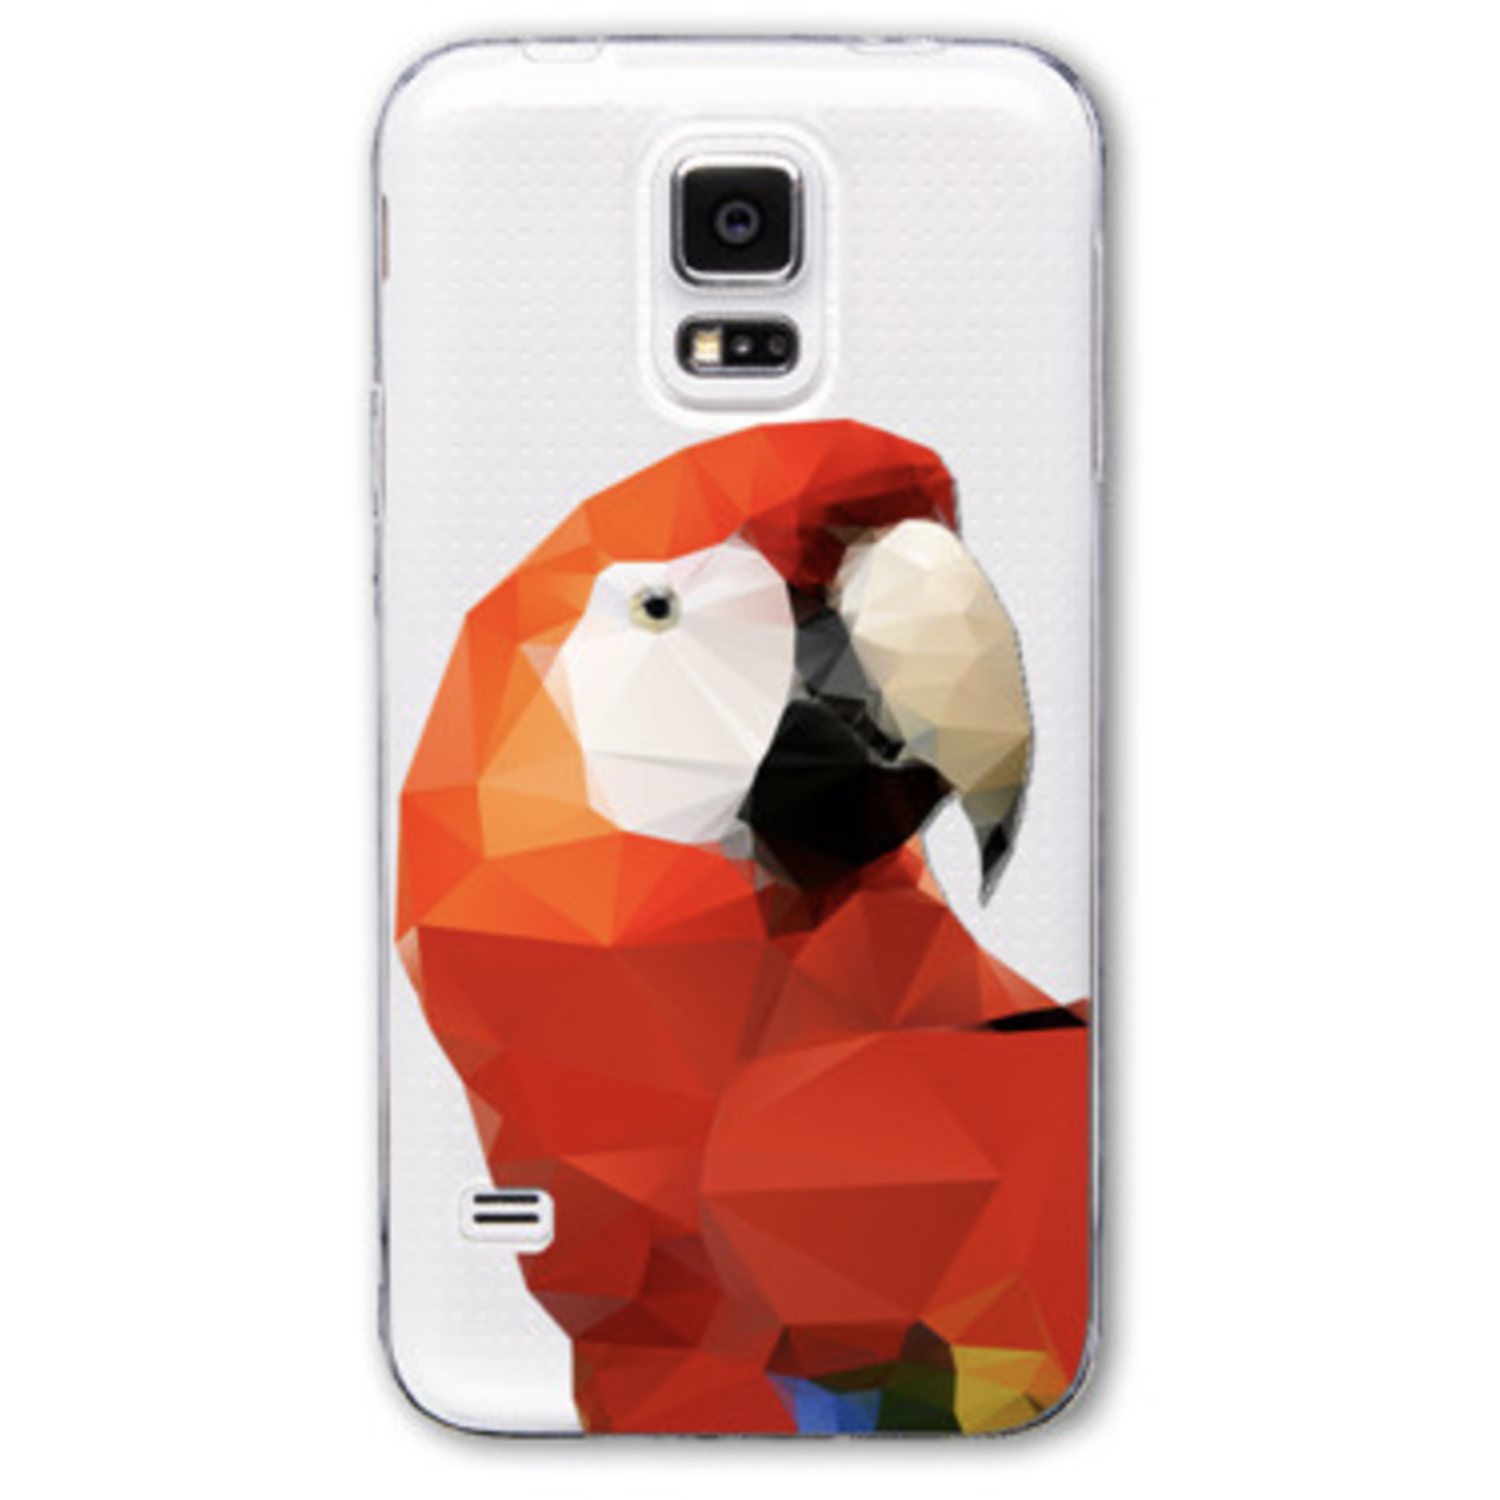 Kritzel Case Collection Galaxy S5 - Mod. #489